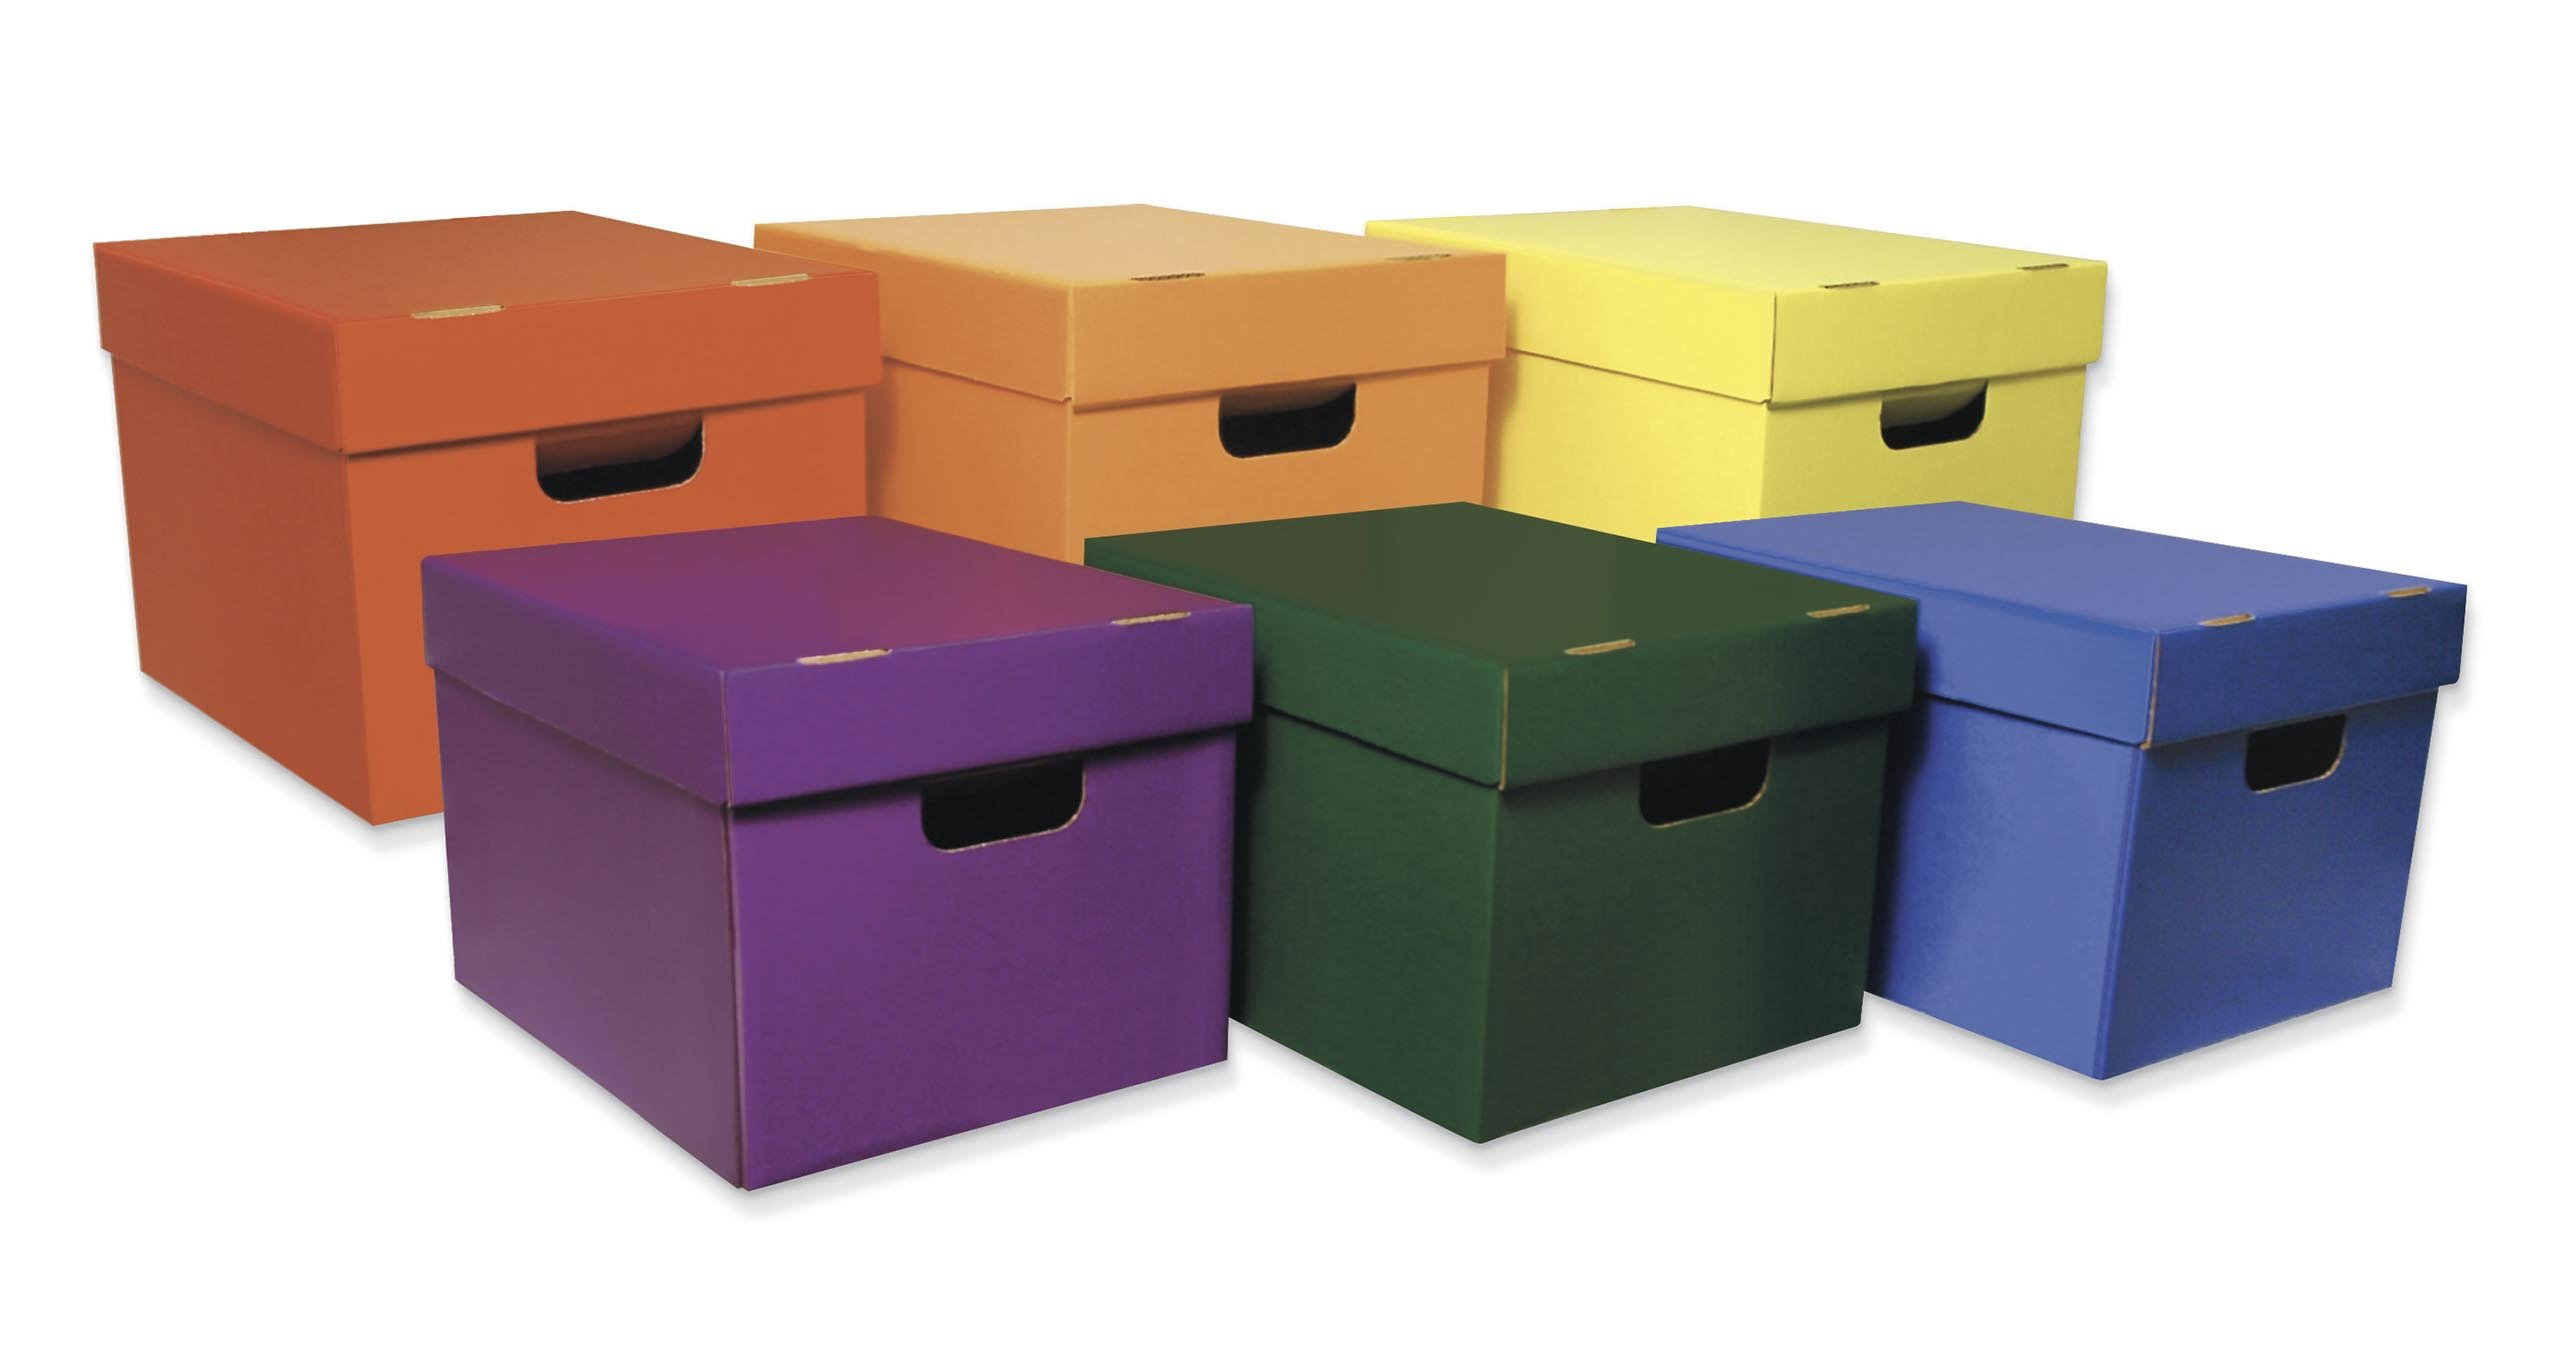 "Classroom Keepers Storage Totes, 6 Assorted Colors, 10-1/8""H x 12-1/4""W x 15-1/4""D, 6 Pieces"